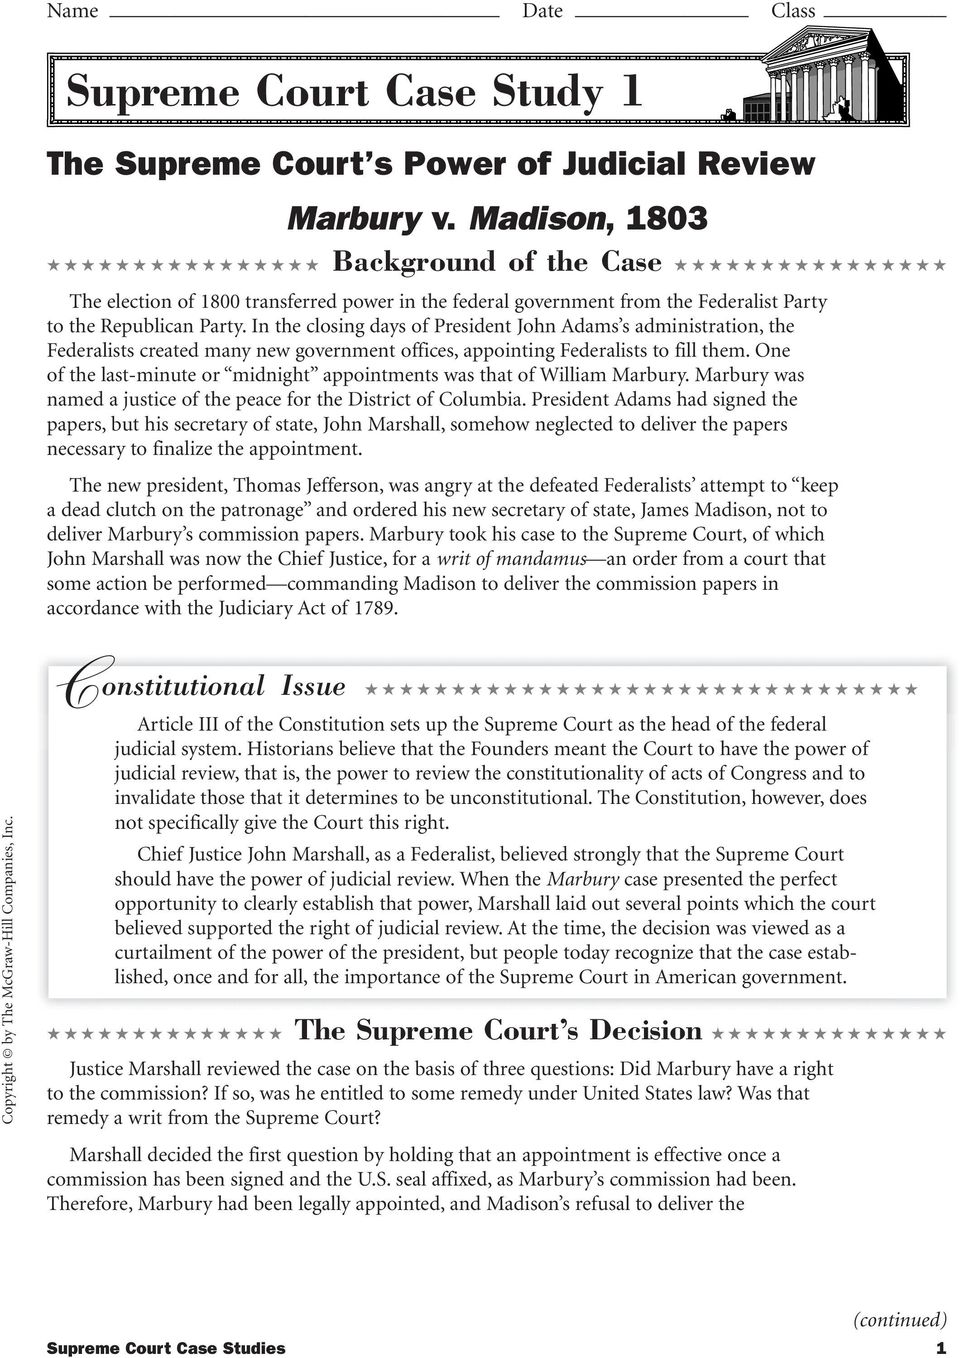 marbury v madison 1803 worksheet answers marbury v madison supreme in addition Marbury v Madison Worksheet also Us Consution Scavenger Hunt Answers moreover Marbury V Madison Political Cartoon ysis   lairfan org together with Marbury V Madison 1803 Worksheet Answers 68130 Factual Questions On further Today in Supreme Court History  The Court decides Marbury v  Madison also Us Government Worksheets Consution For High School Civics And together with Marbury v  Madison  1803 further marbury v madison 1803 worksheet answers supreme court cases marbury likewise Quiz   Worksheet   John Marshall's Supreme Court   Study in addition Judicial Review Marbury v  Madison furthermore Supreme Court Case Stus   PDF in addition  furthermore Unled moreover marbury v madison worksheet also Marbury v  Madison  1803    Bill of Rights Insute. on marbury v madison worksheet answers